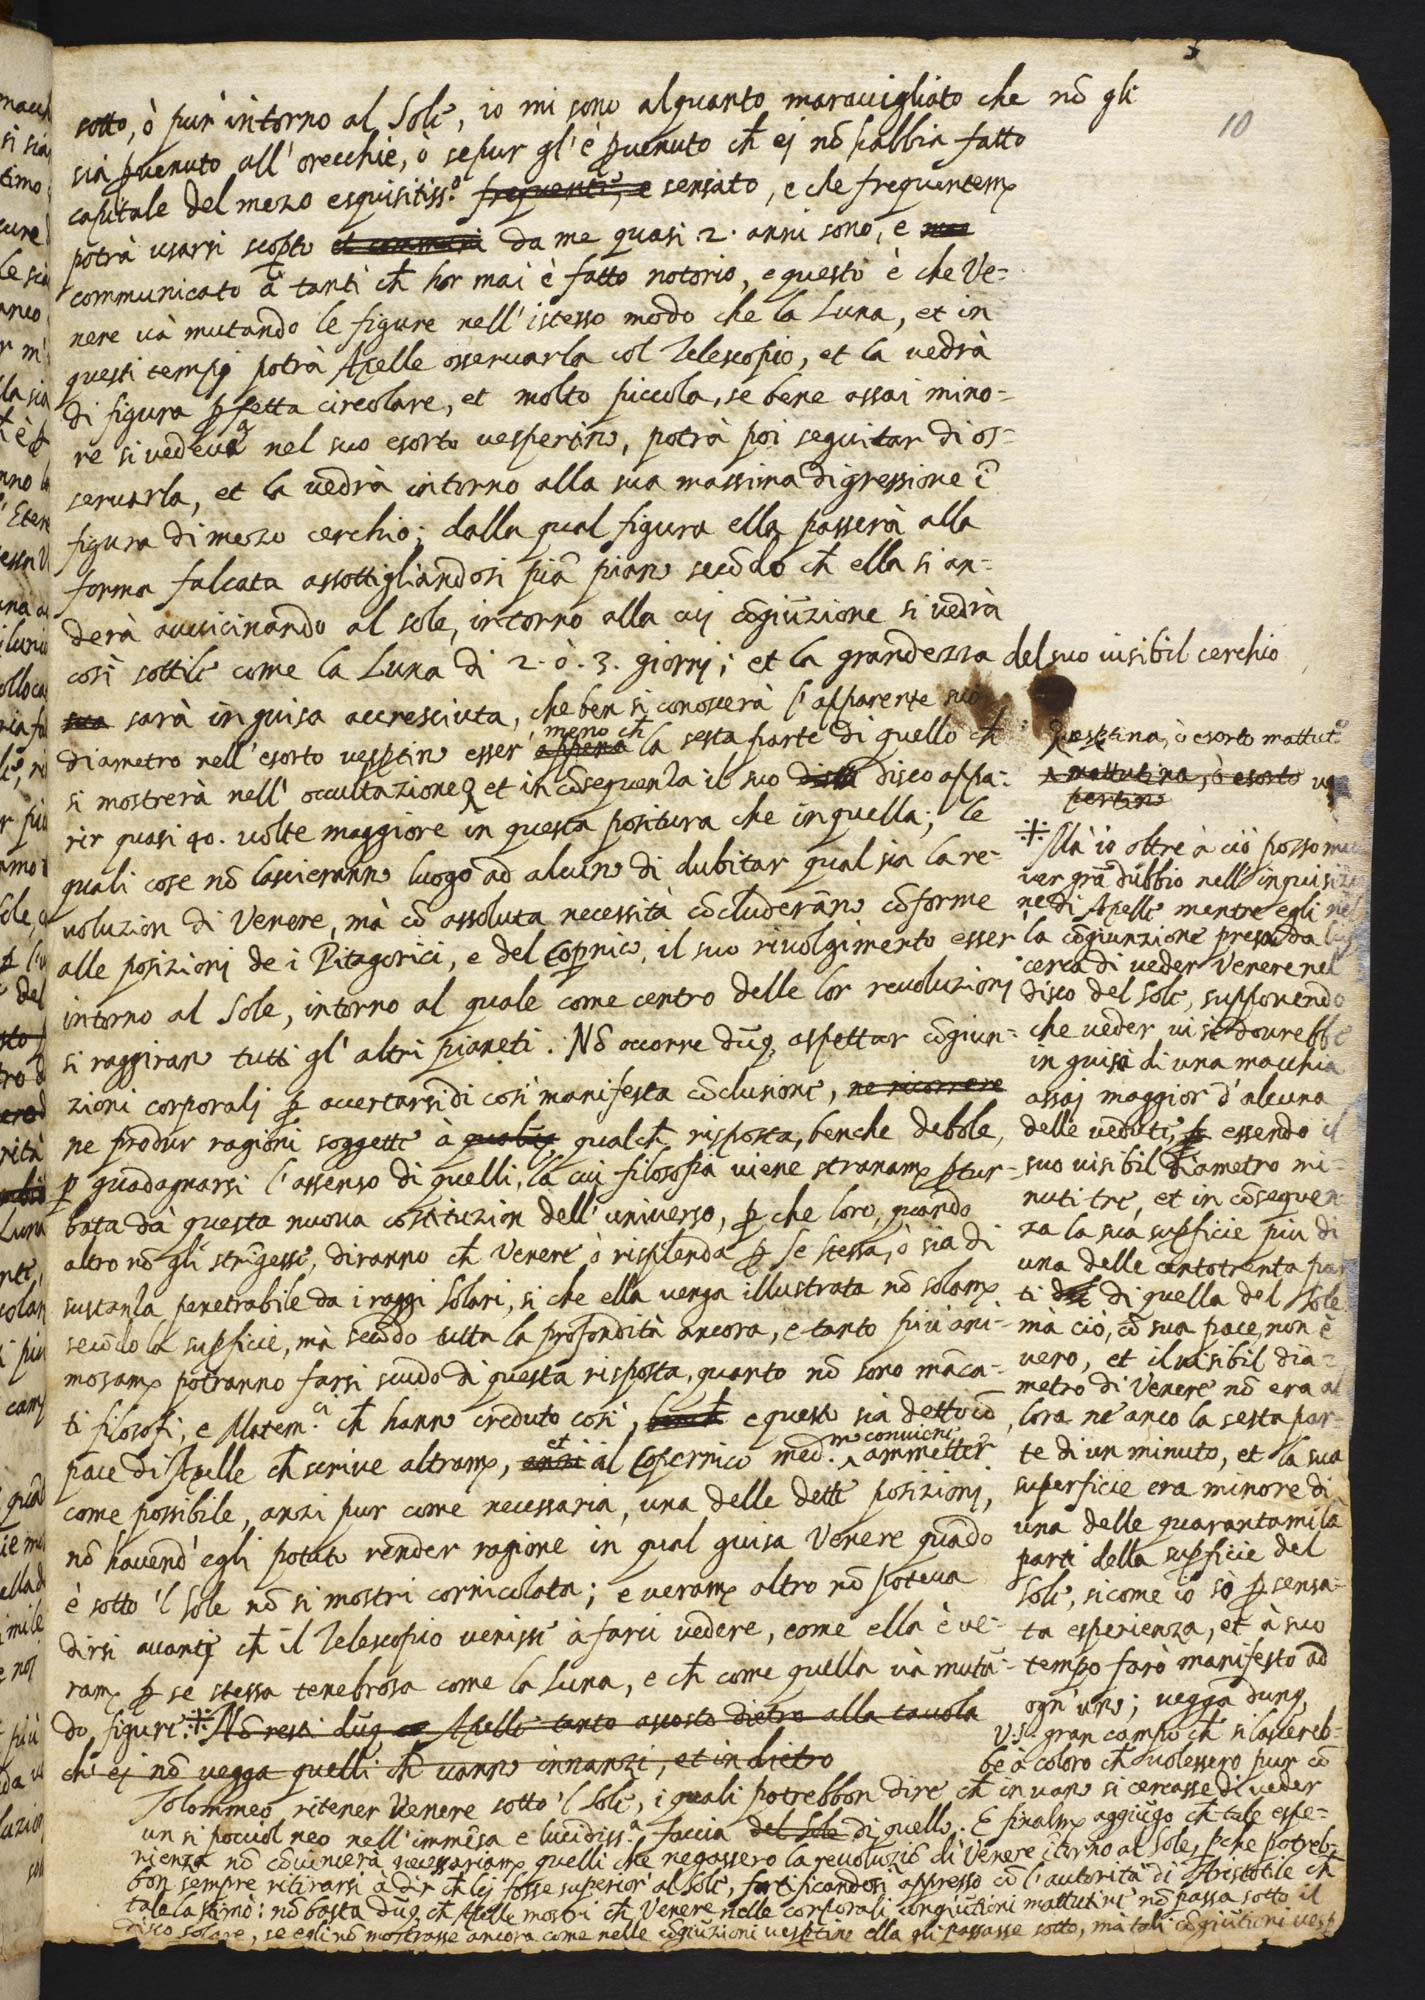 Galileo Galilei's Letters of the Sunspots f.10